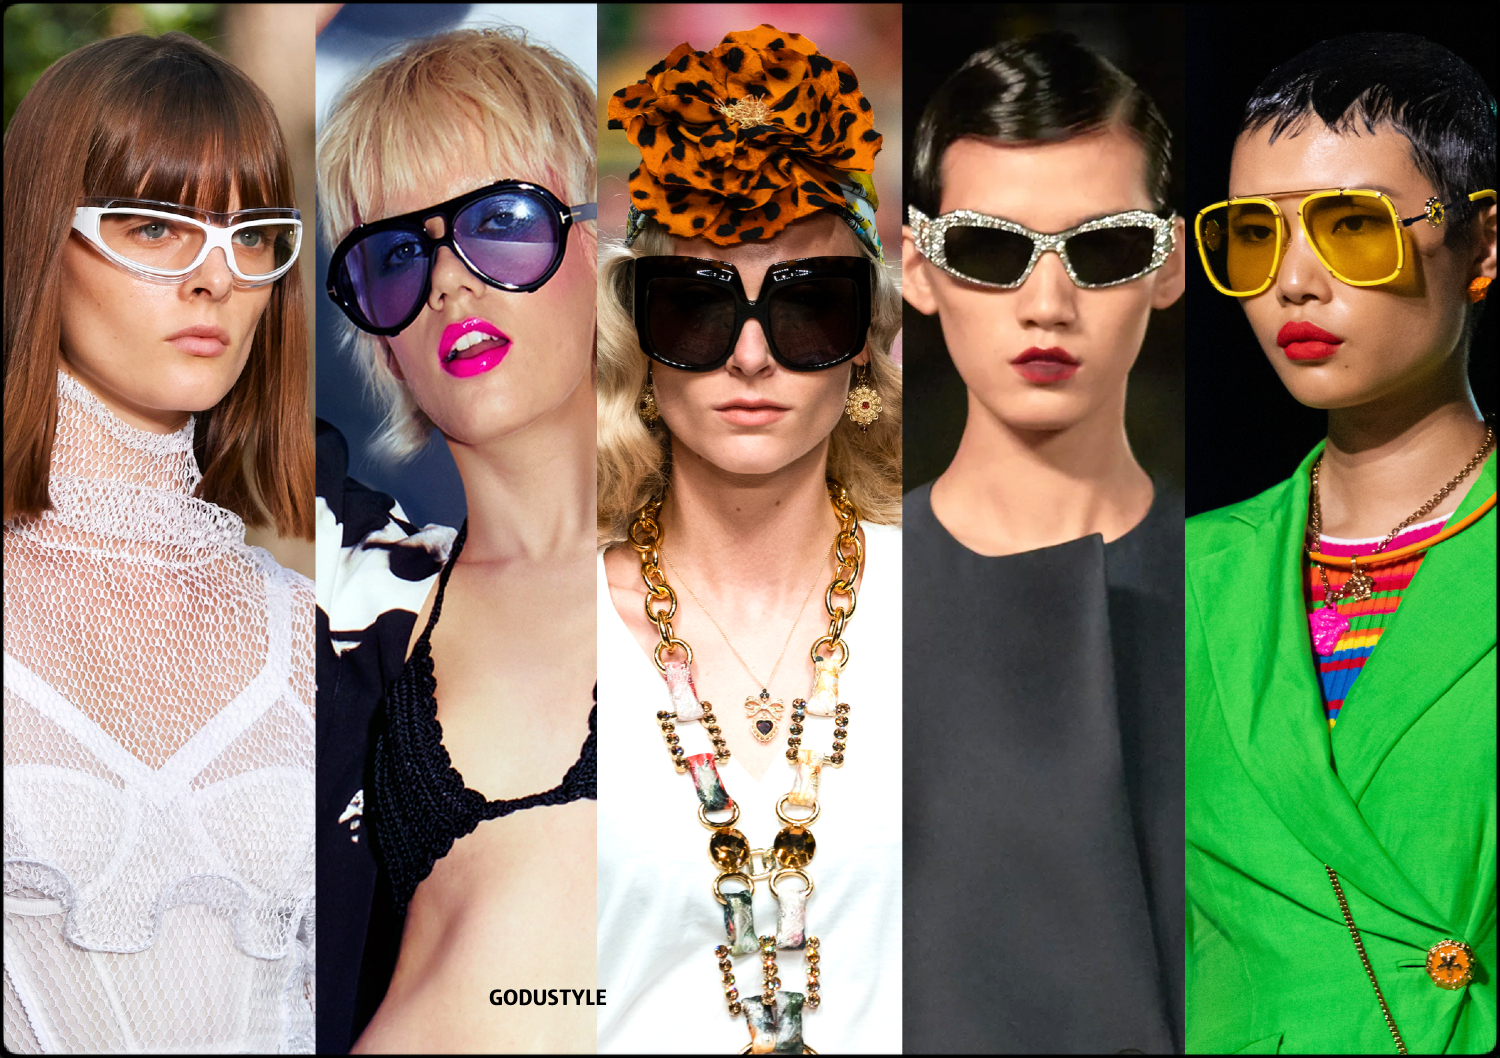 sunglasses-spring-summer-2021-trend-fashion-look-style-details-shopping-gafas-sol-moda-tendencias-godustyle